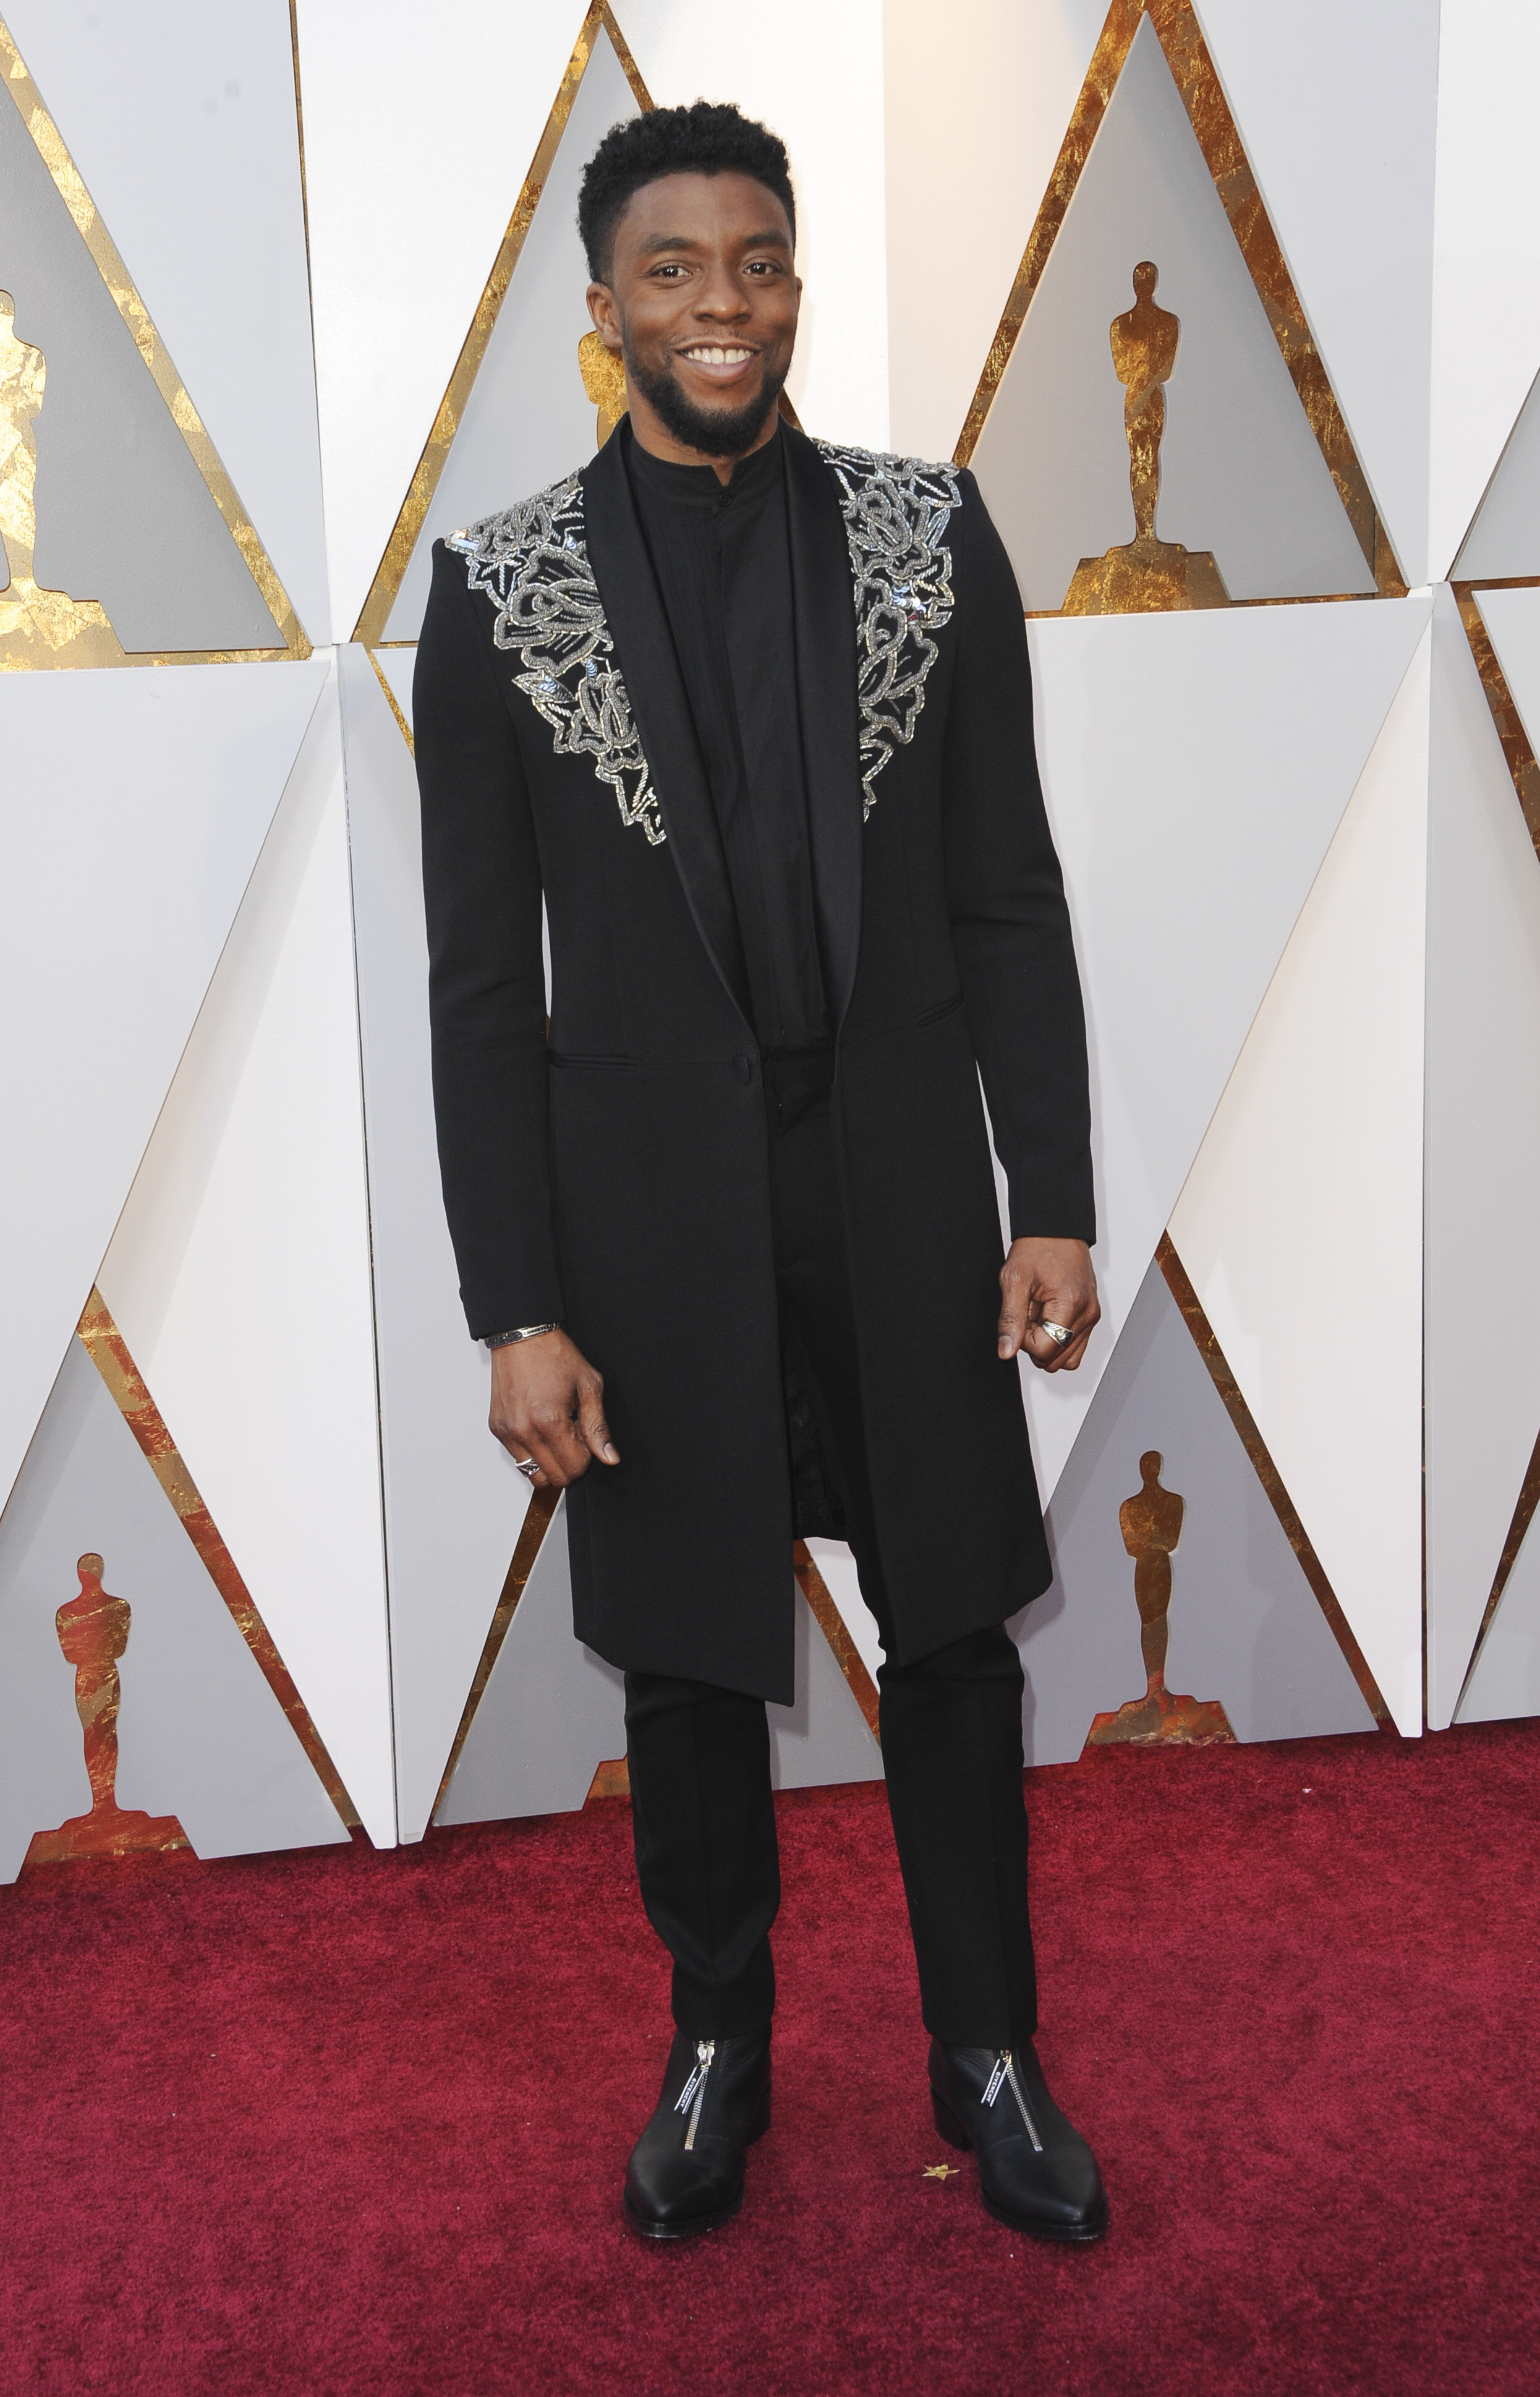 Chadwick Boseman arrives at the 90th Annual Academy Awards (Oscars) held at the Dolby Theater in Hollywood, California. (Image: Apega/WENN.com)<p></p>